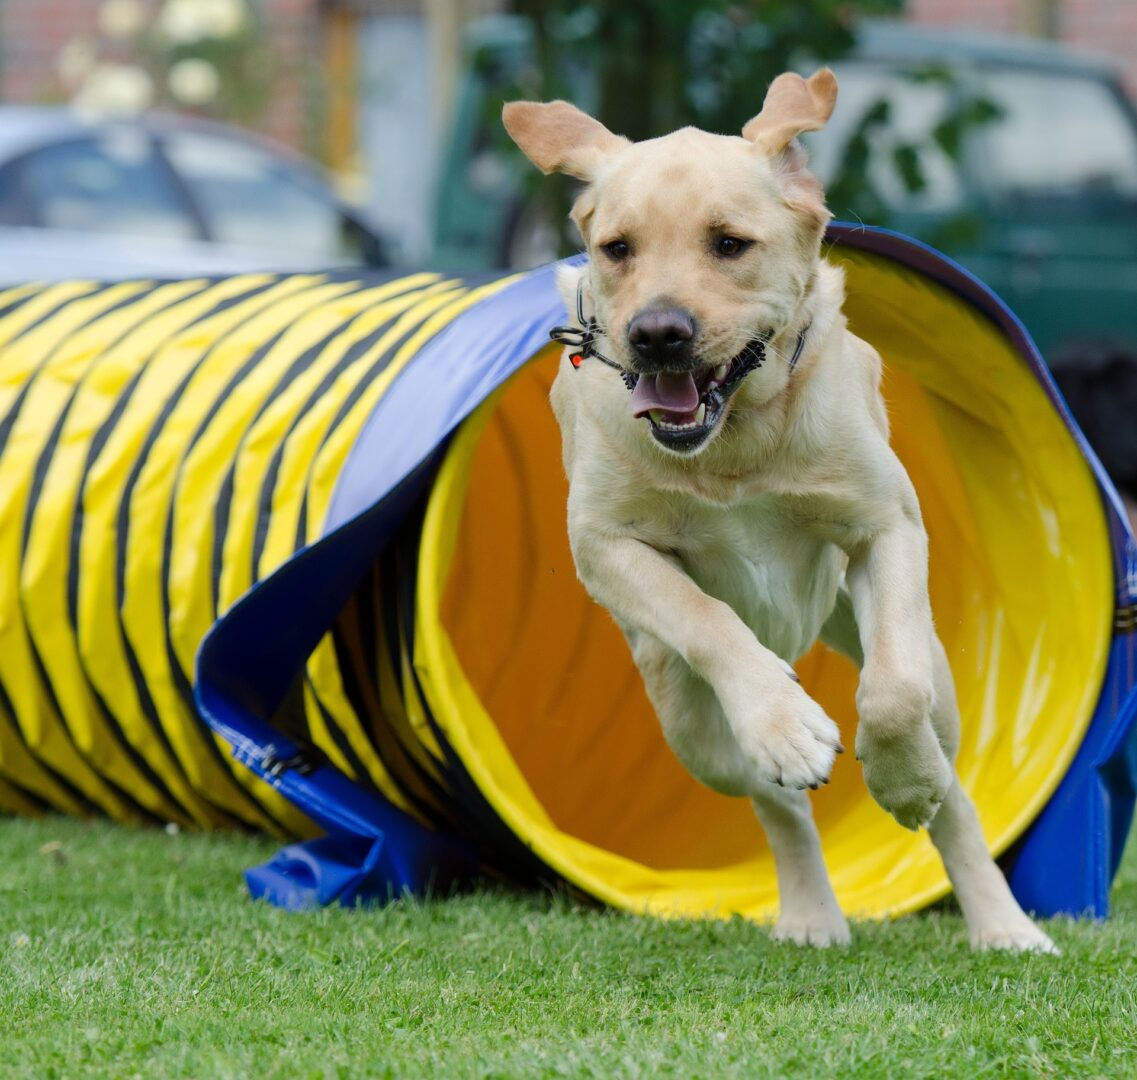 Dog running through agility course